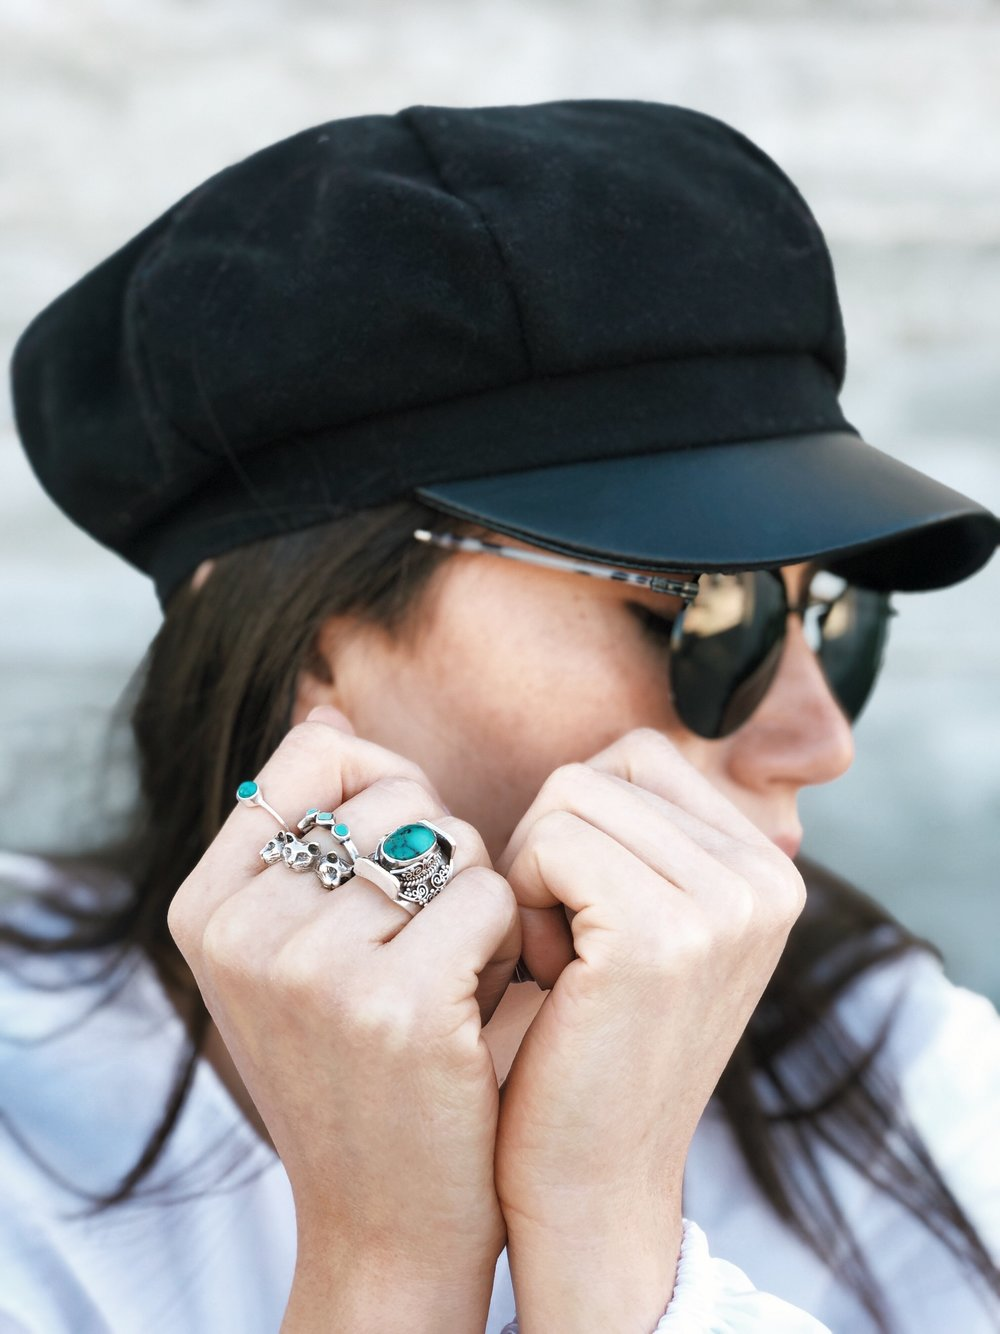 Turquoise ring detail - A Week Of Cruelty-Free Outfits & Vegan Beauty With Jessica Salazar From All There August on The Good Trade